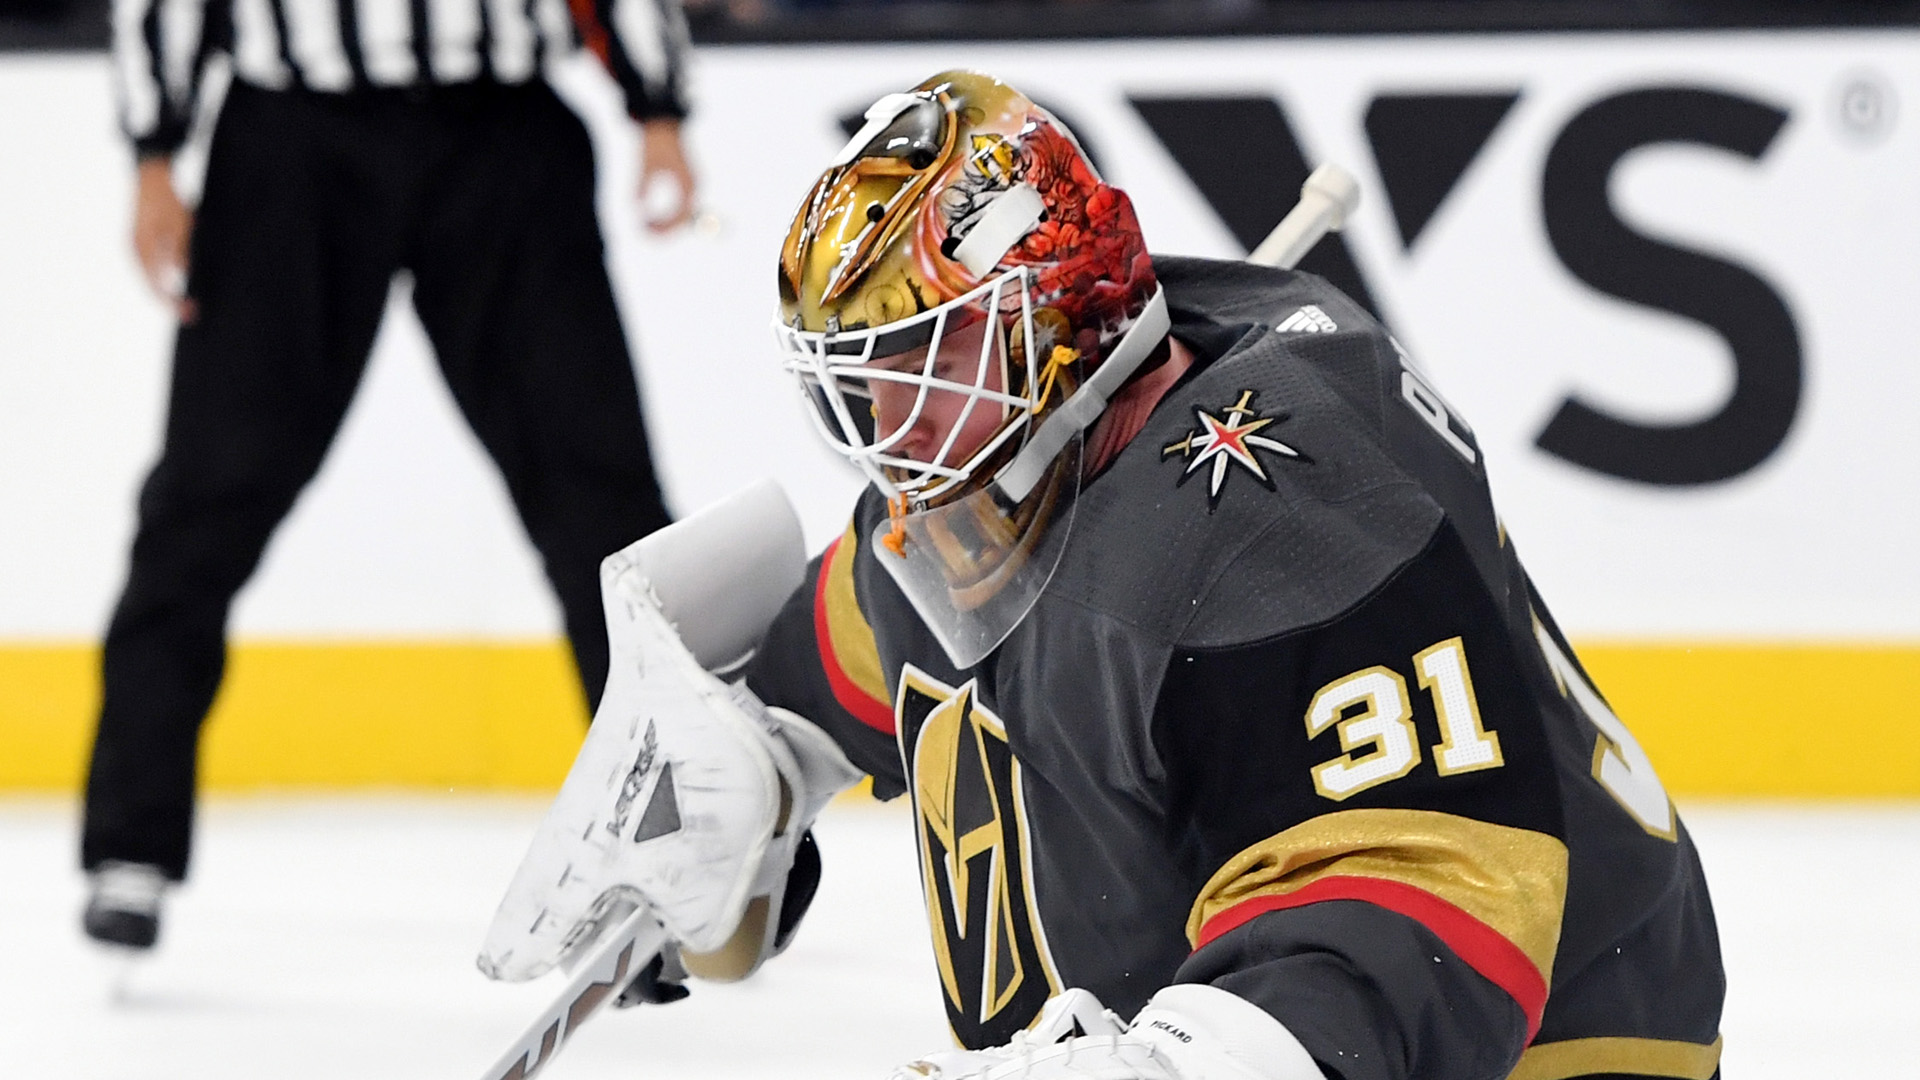 Pickard: This season is about Las Vegas, not Golden Knights